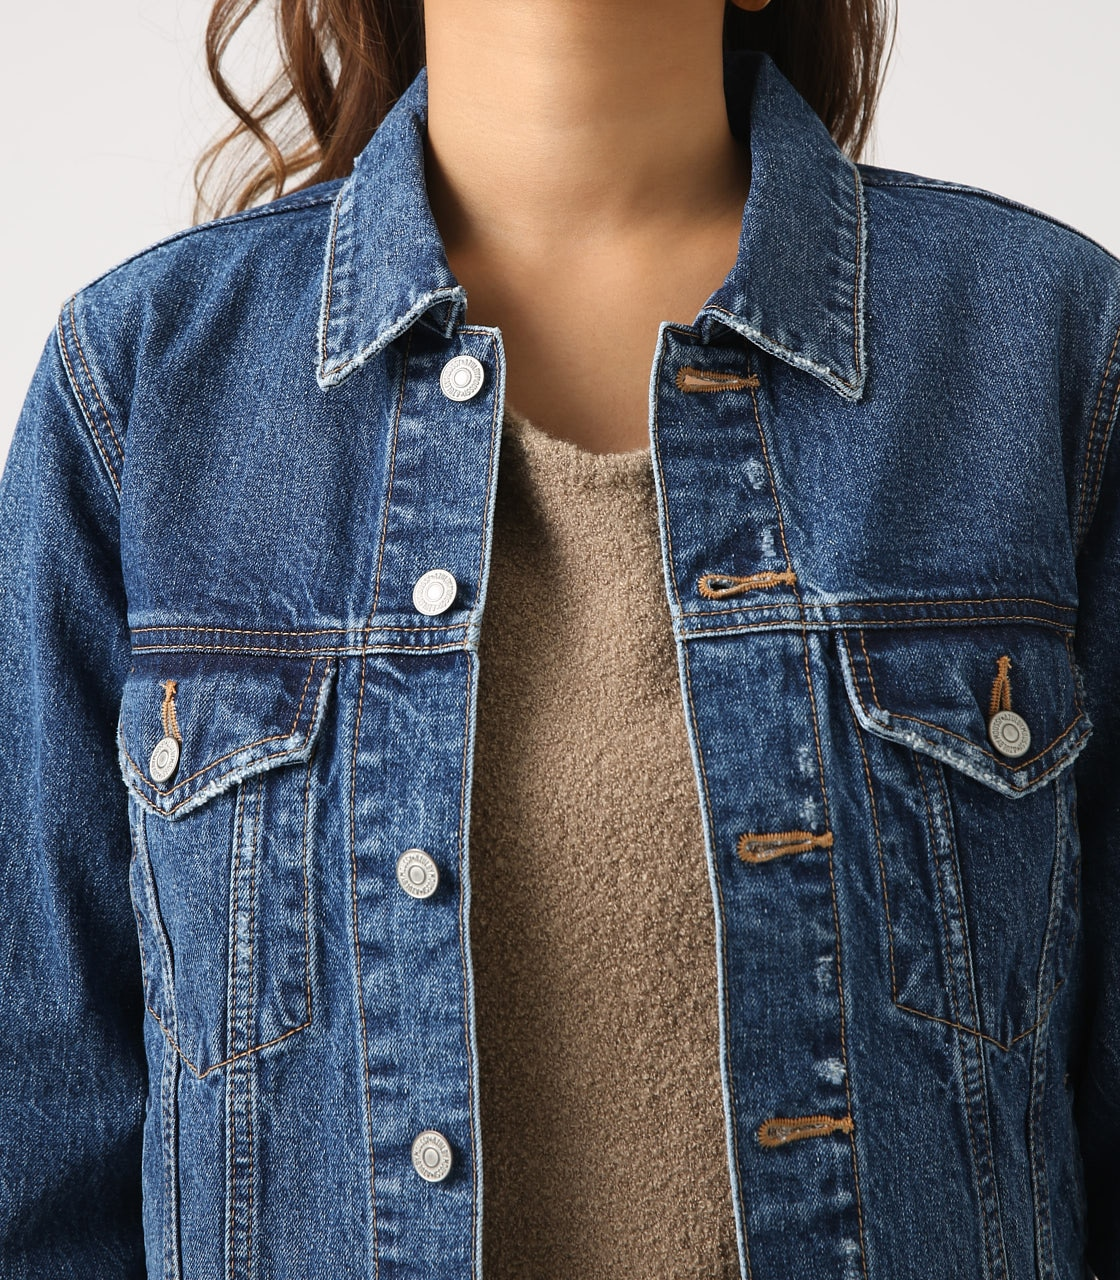 【AZUL BY MOUSSY】DENIM JACKET 詳細画像 BLU 8